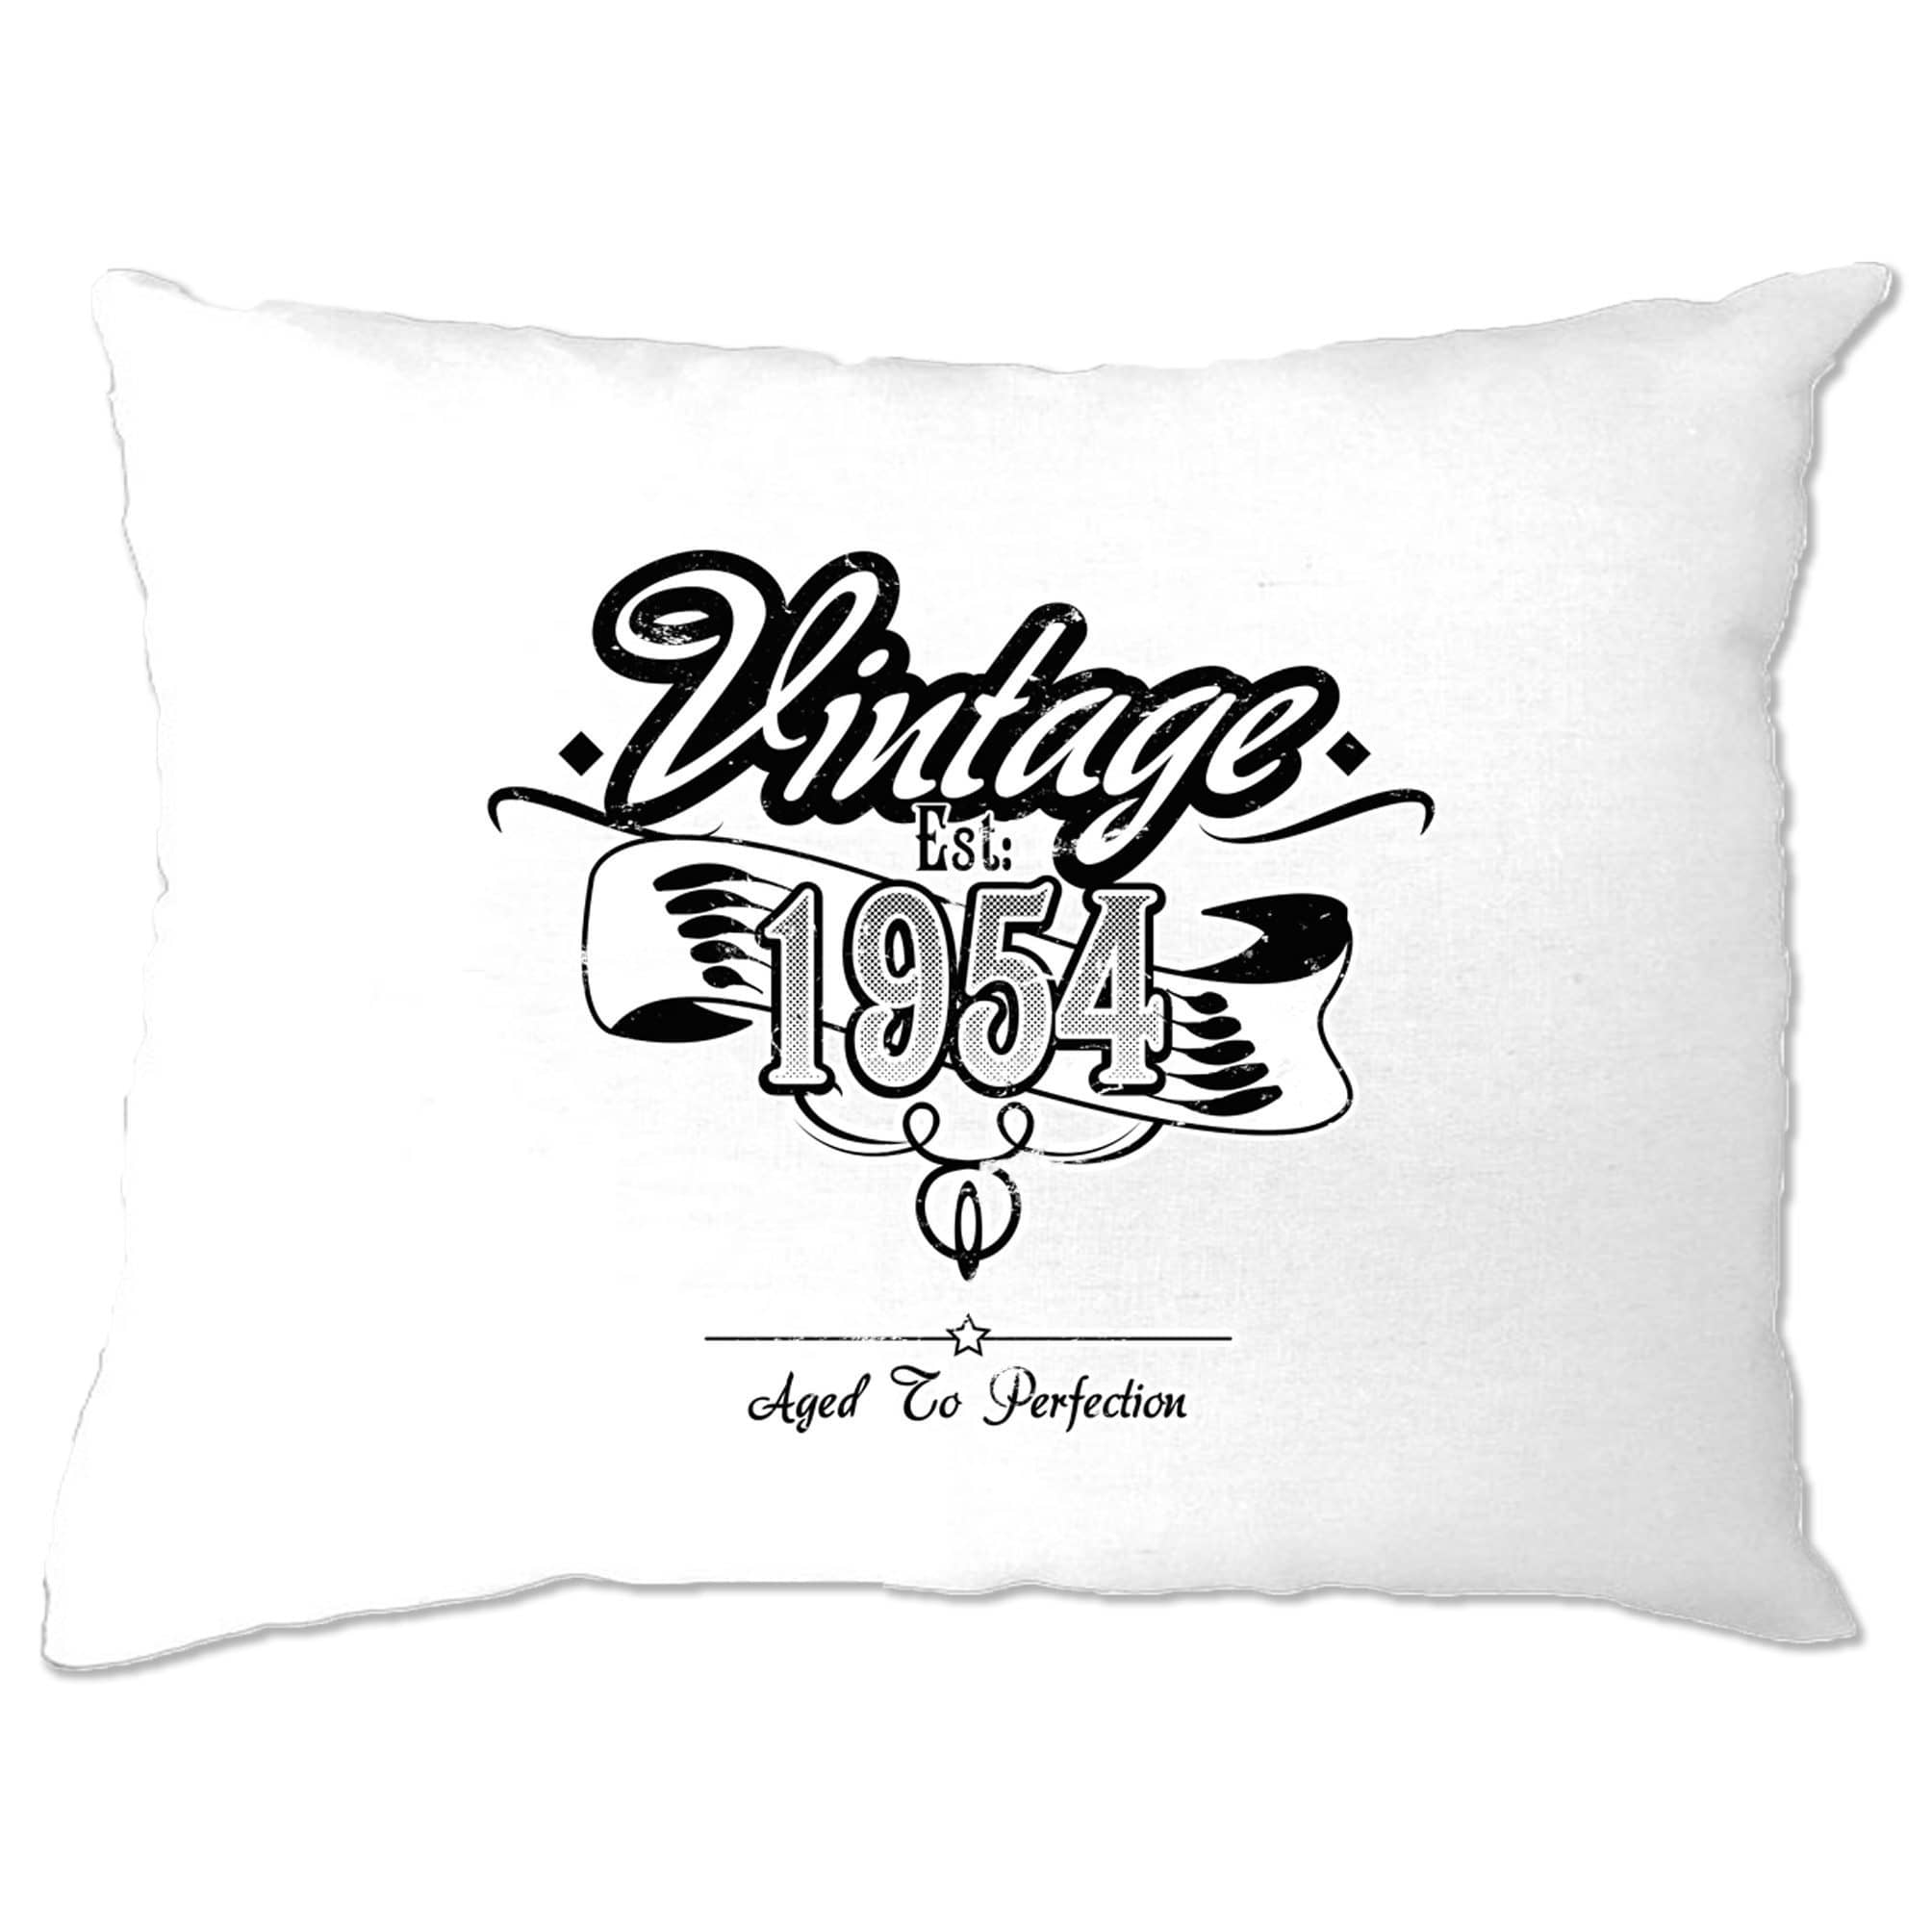 Birthday Pillow Case Vintage Est 1954 Aged To Perfection